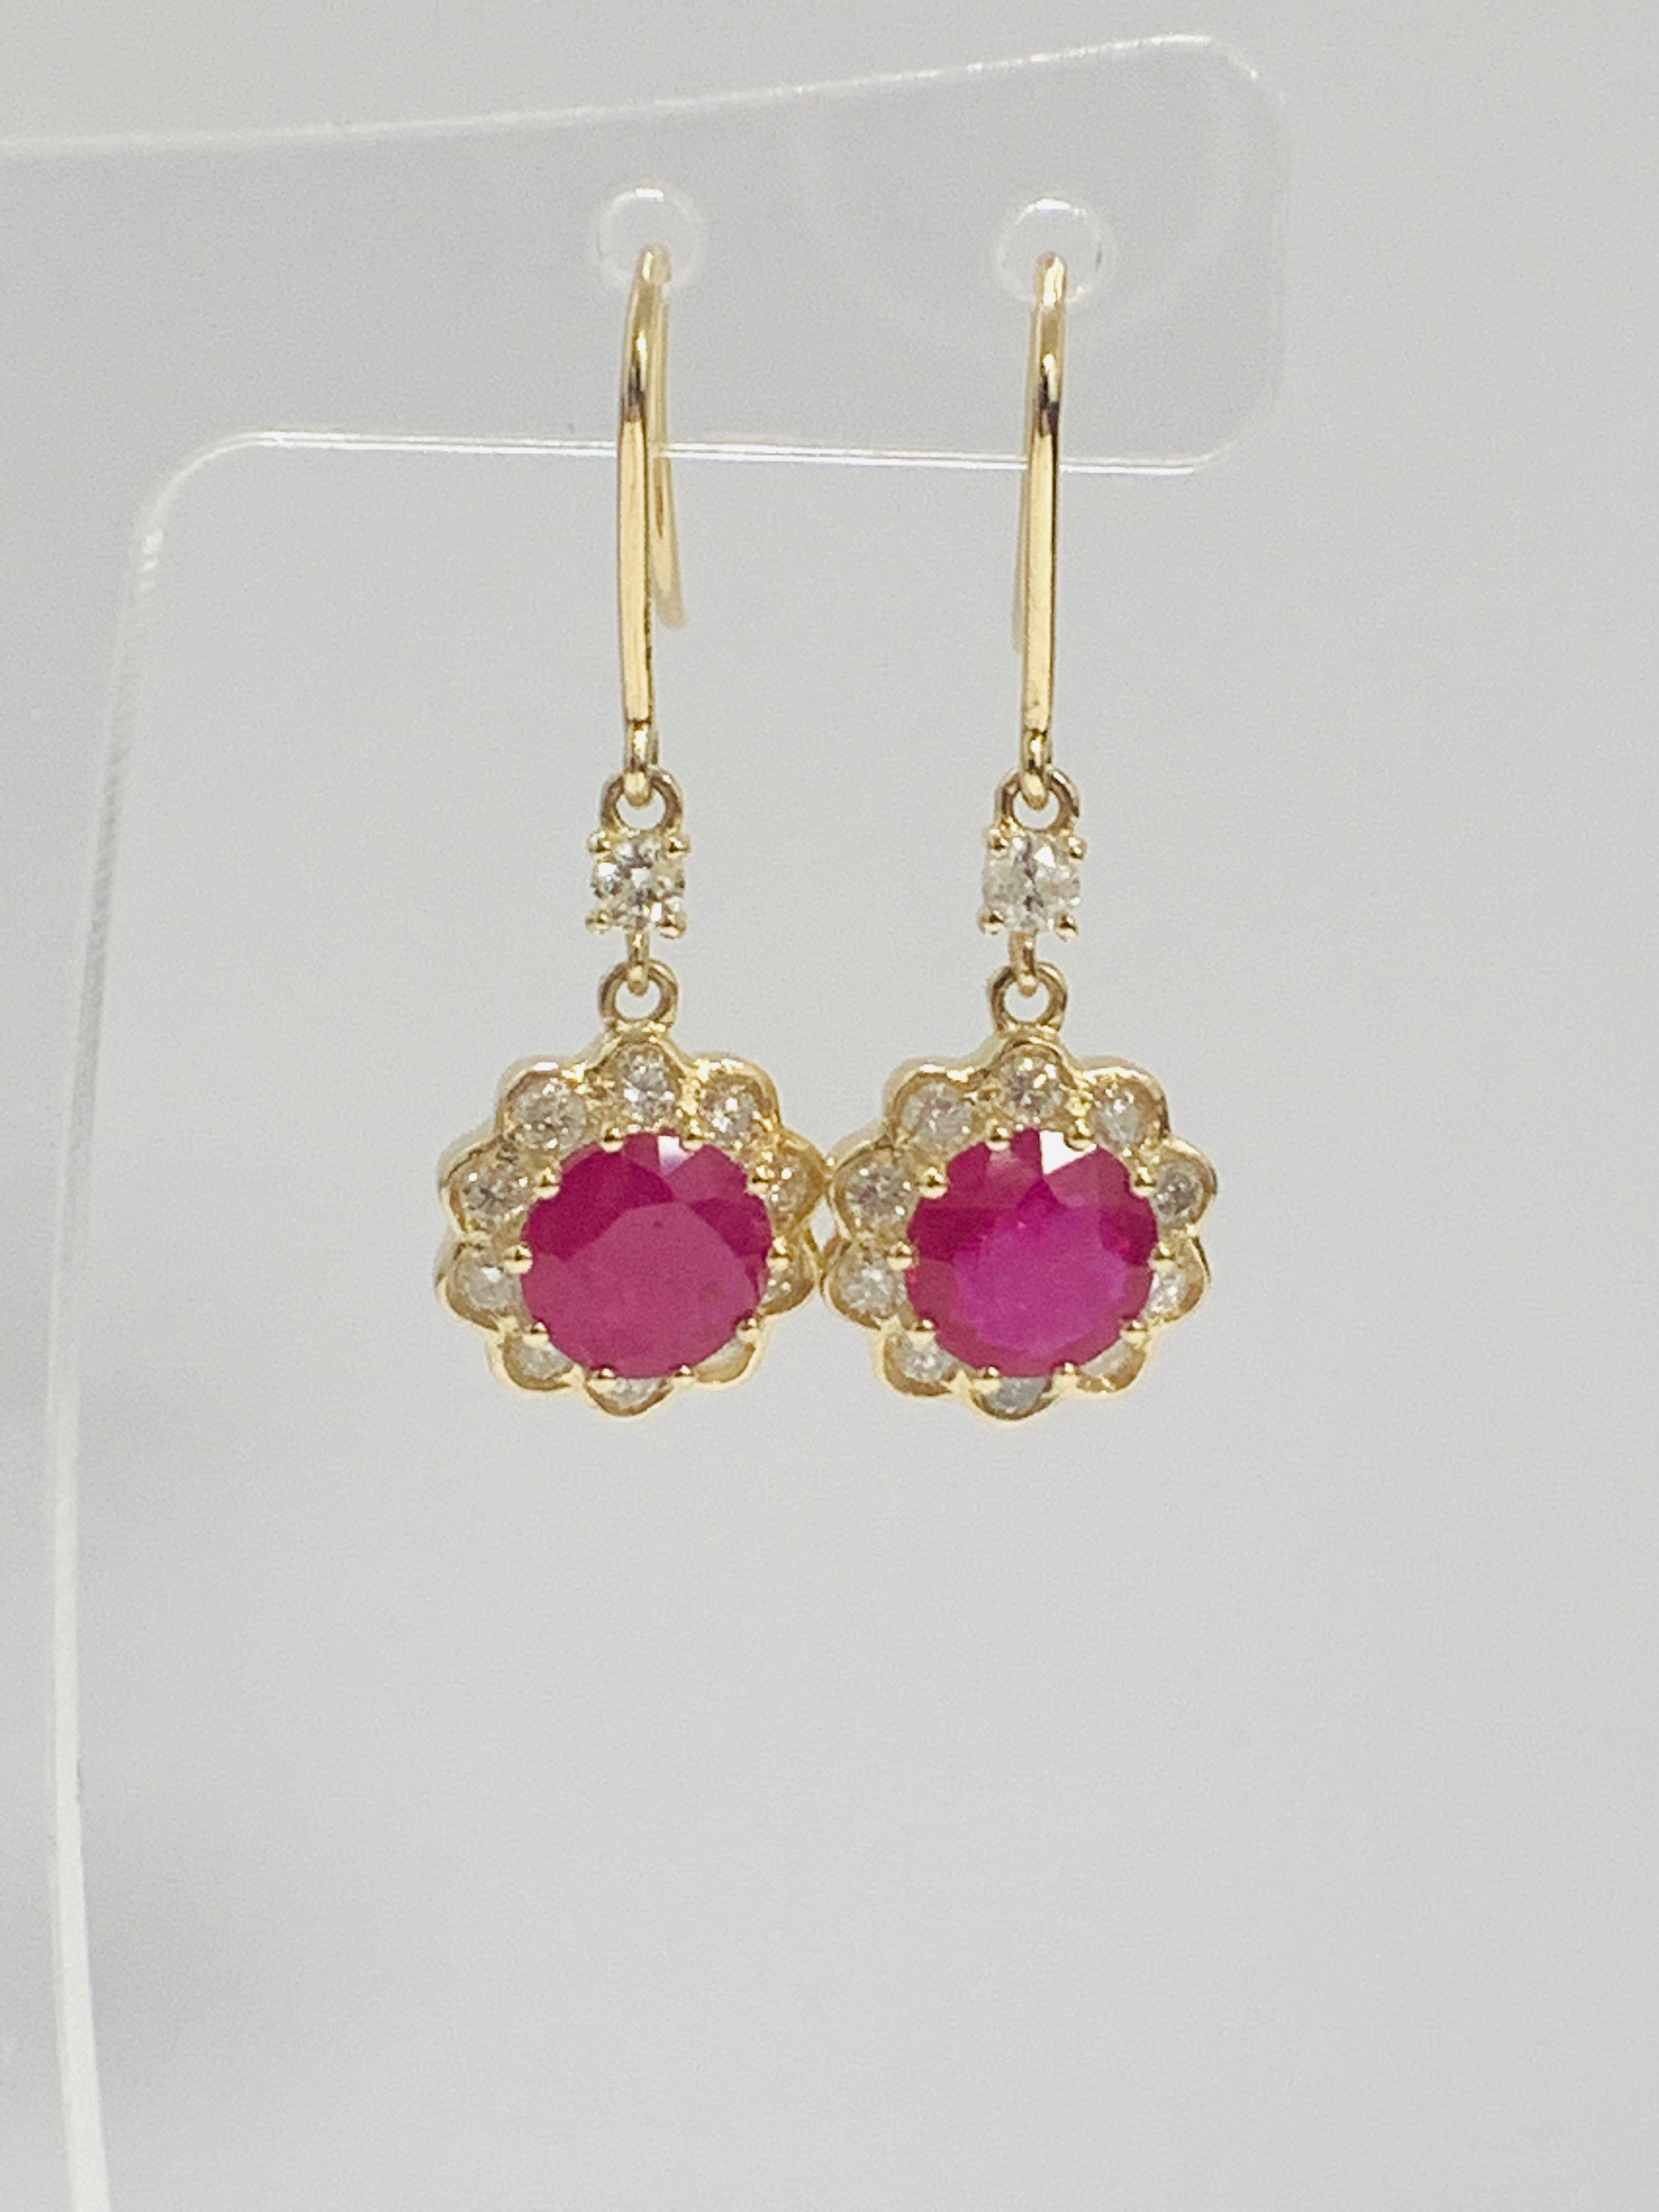 14ct Yellow Gold Ruby and Diamond earrings featuring, 2 round cut, red Rubies (2.22ct TSW) - Image 4 of 8